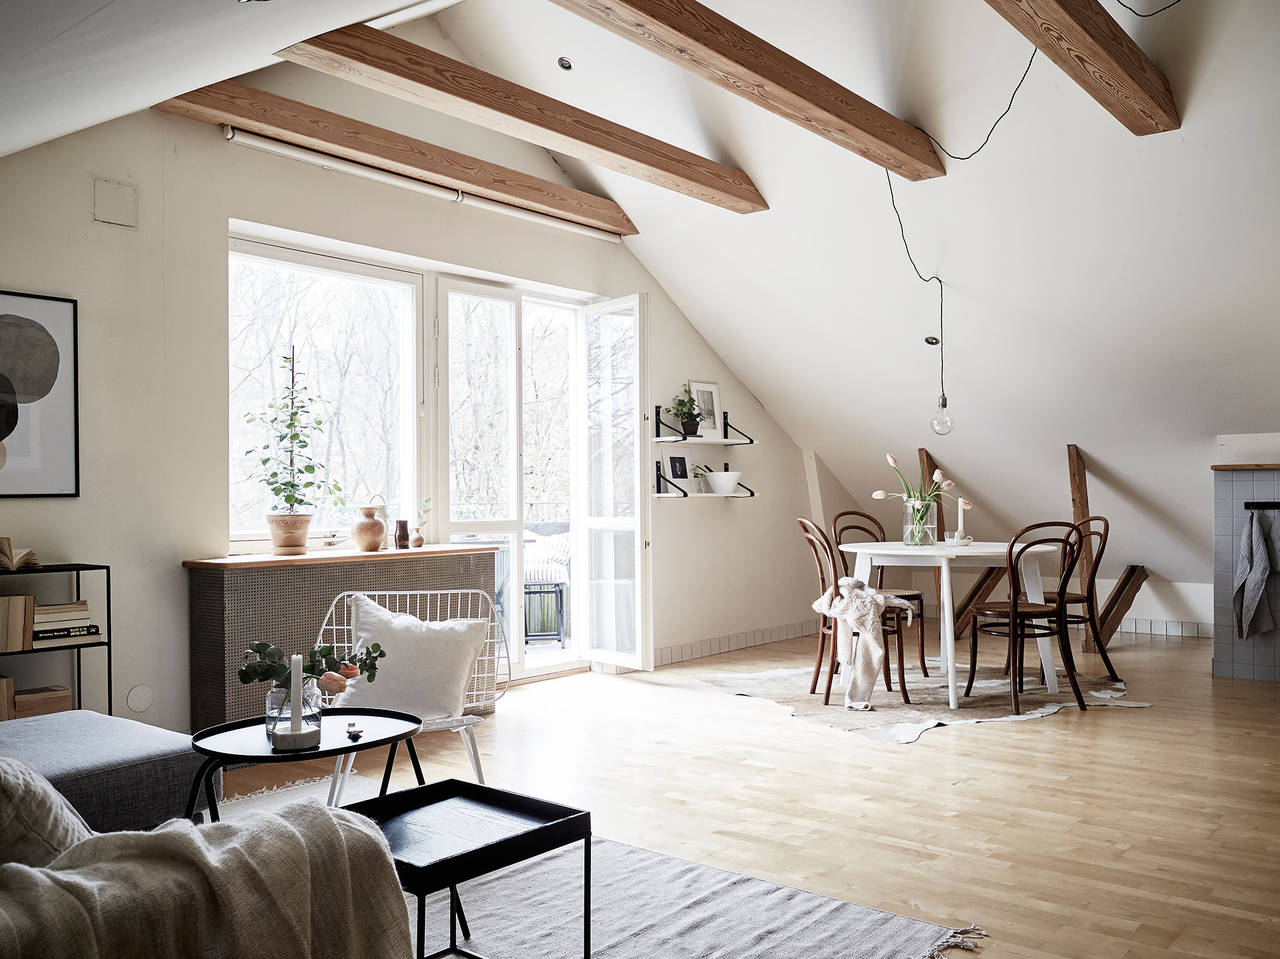 Art Studio Decor Dreamy Attic Studio To Kick Start The Week Daily Dream Decor